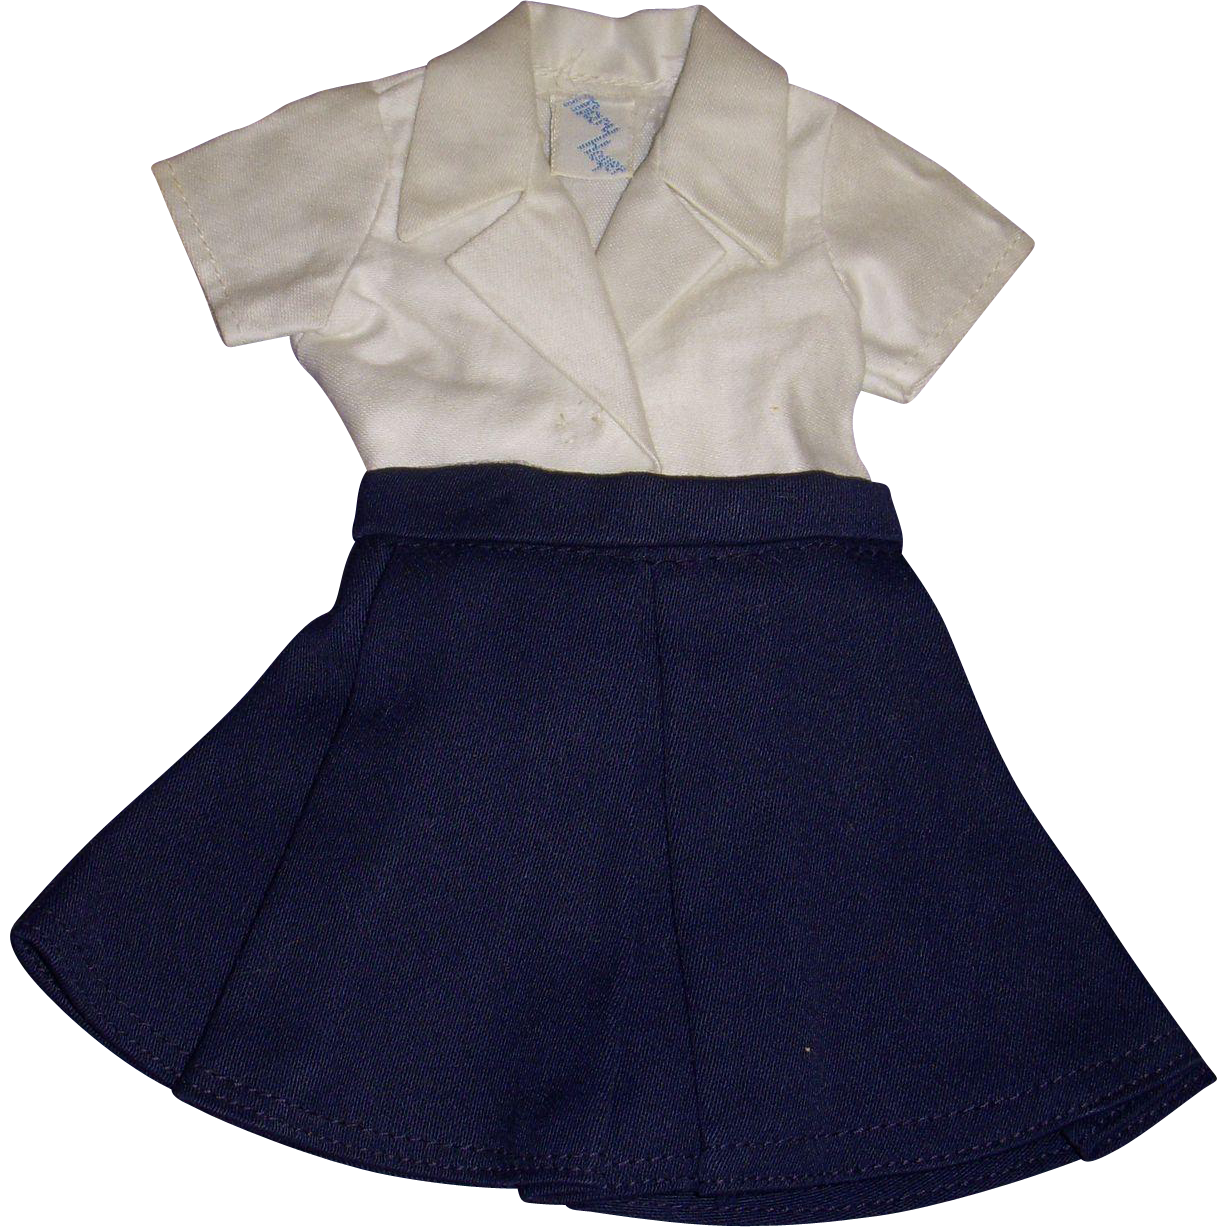 Vintage Tagged Mary Hoyer Skirt and Blouse Set